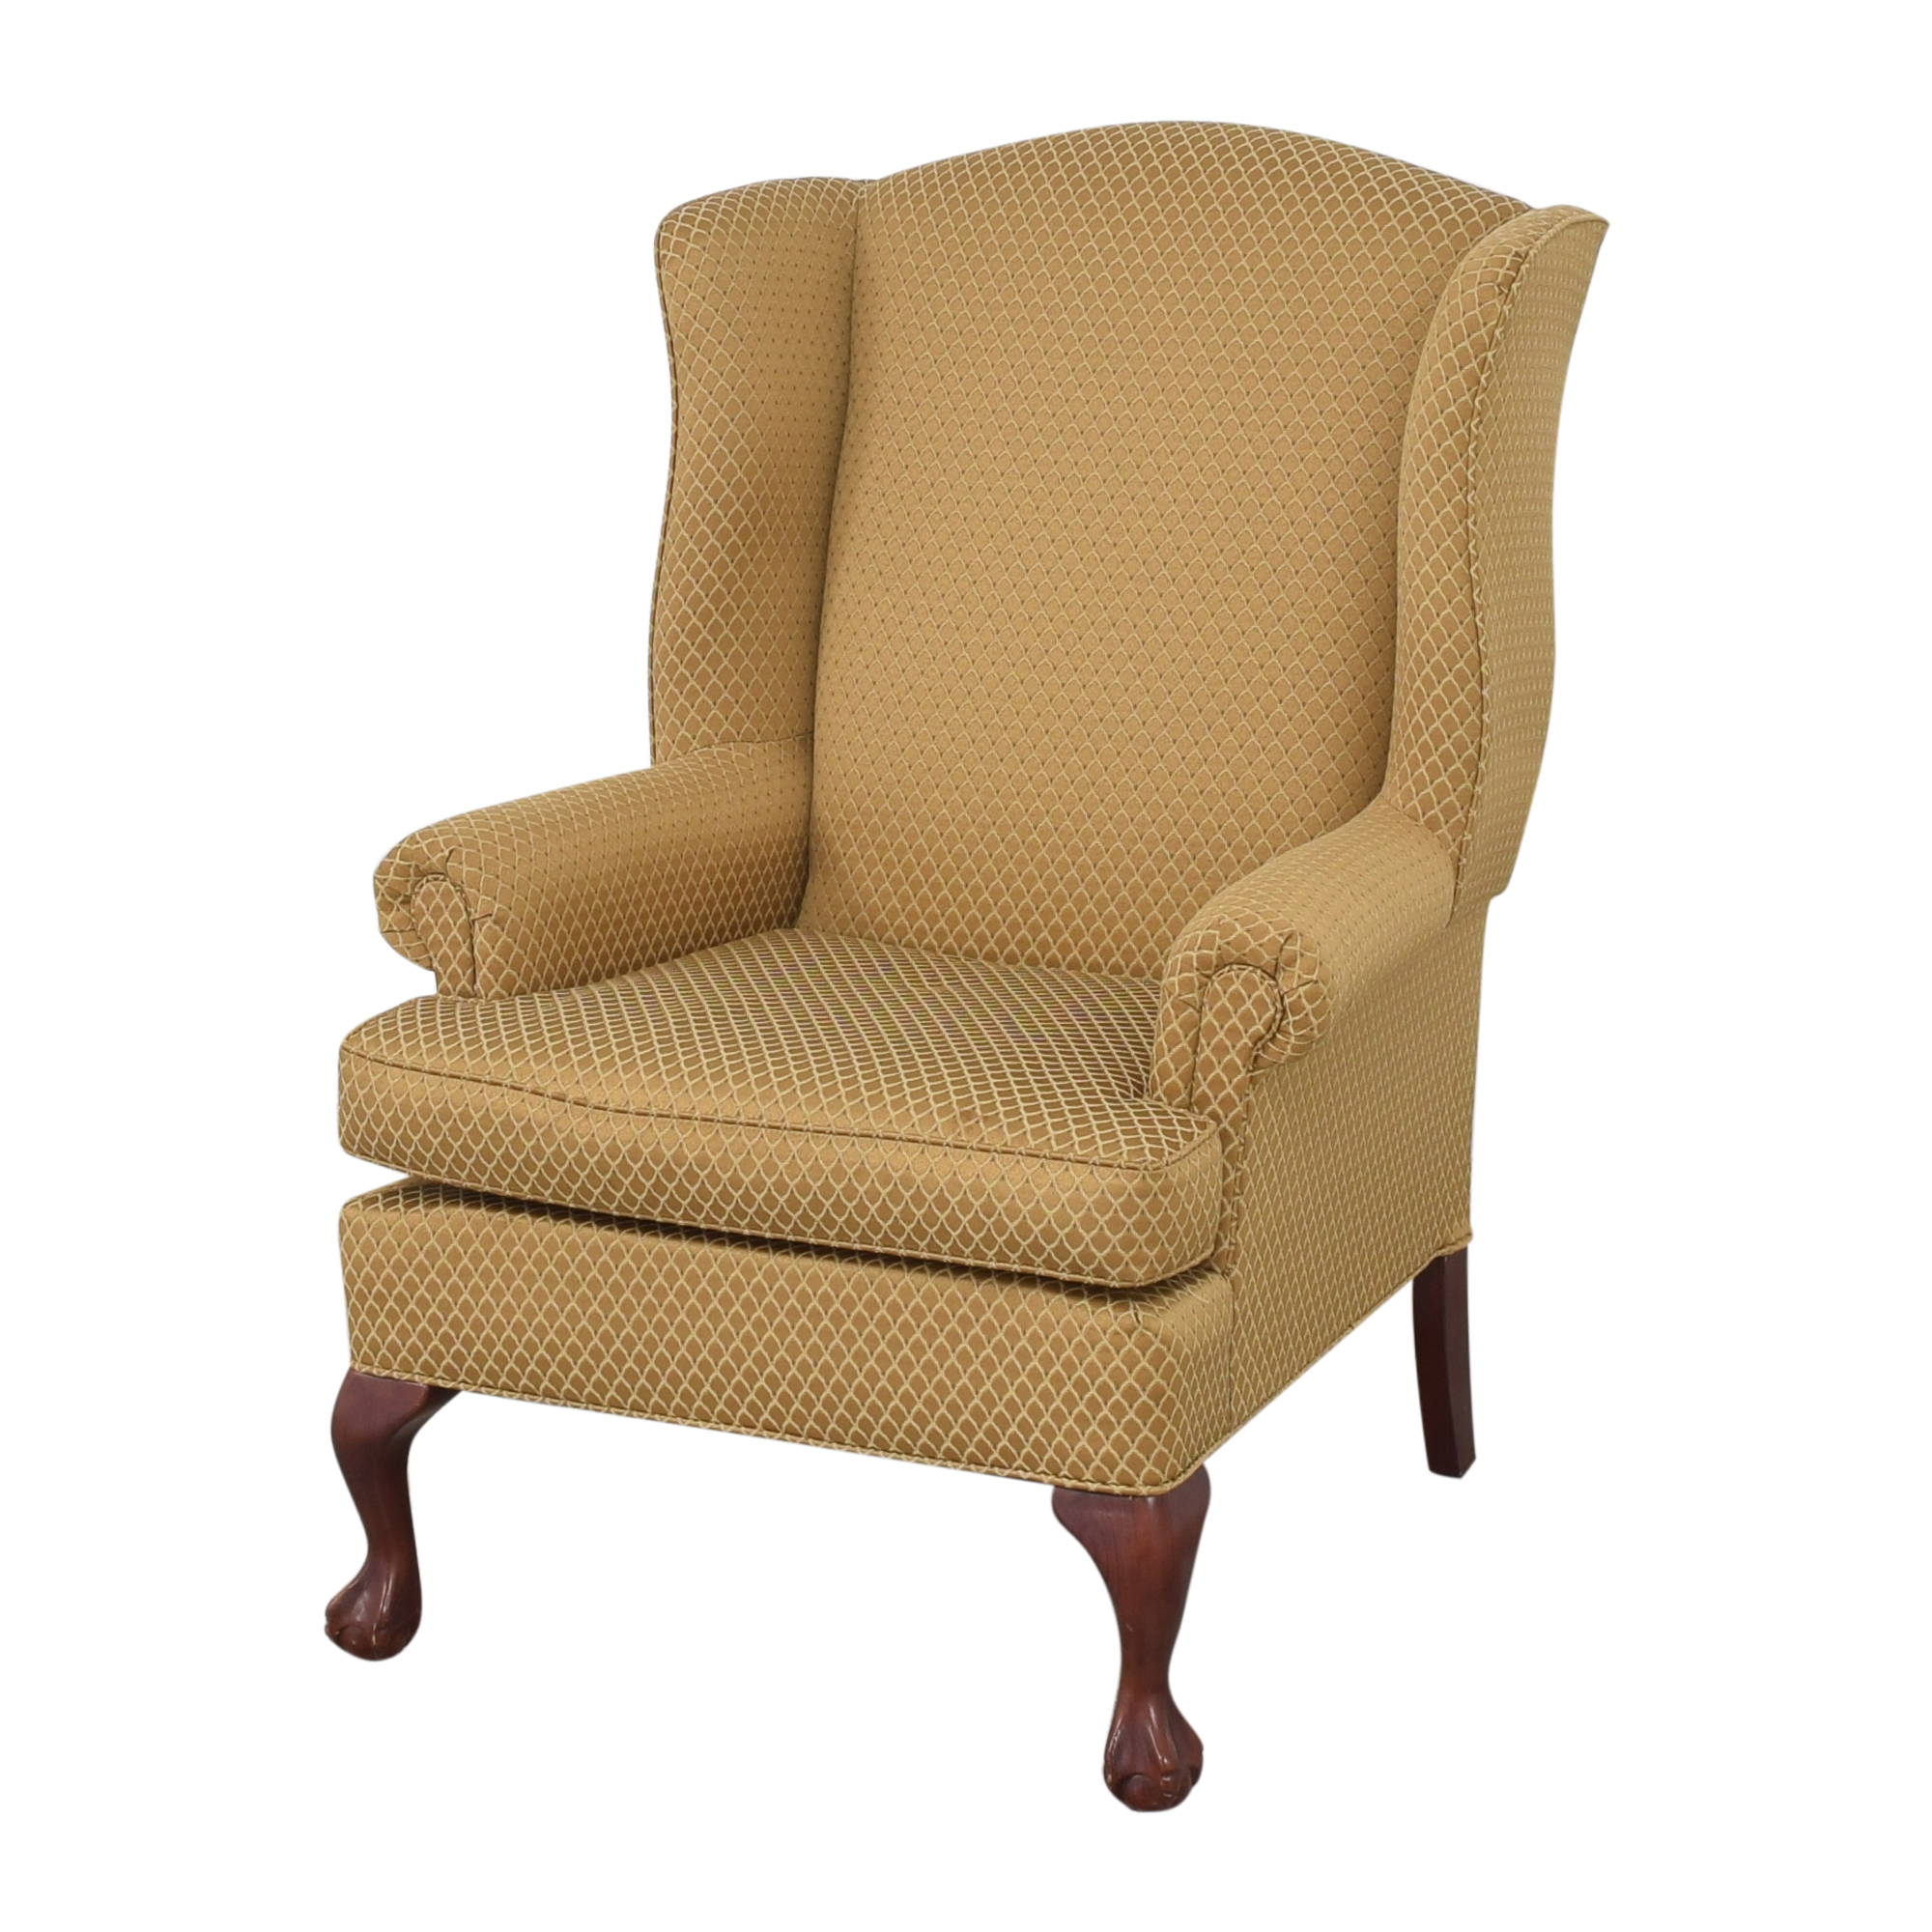 Best Chairs Best Chairs Wingback Chair price